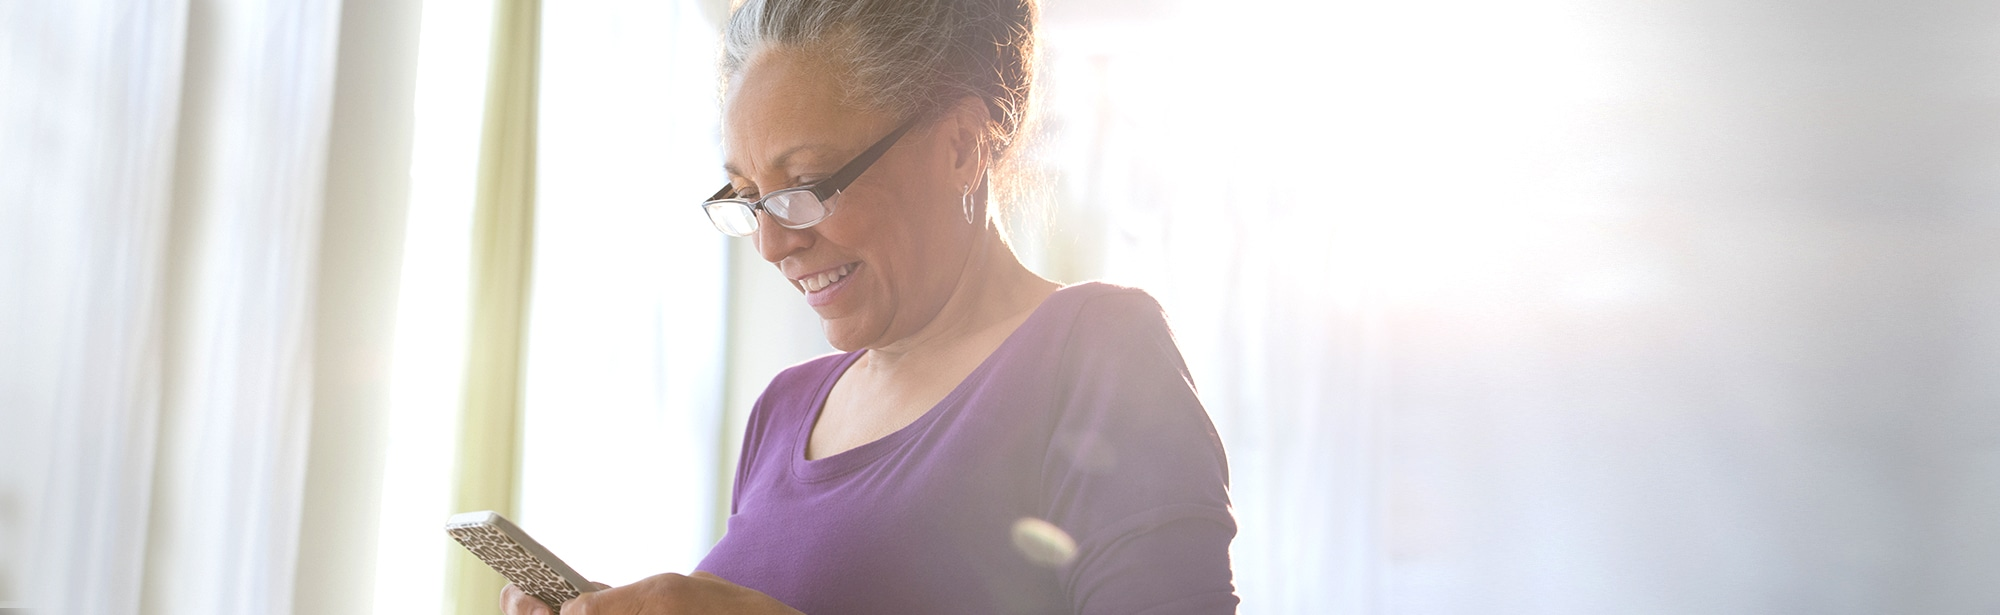 Woman reading smartphone screen smiling